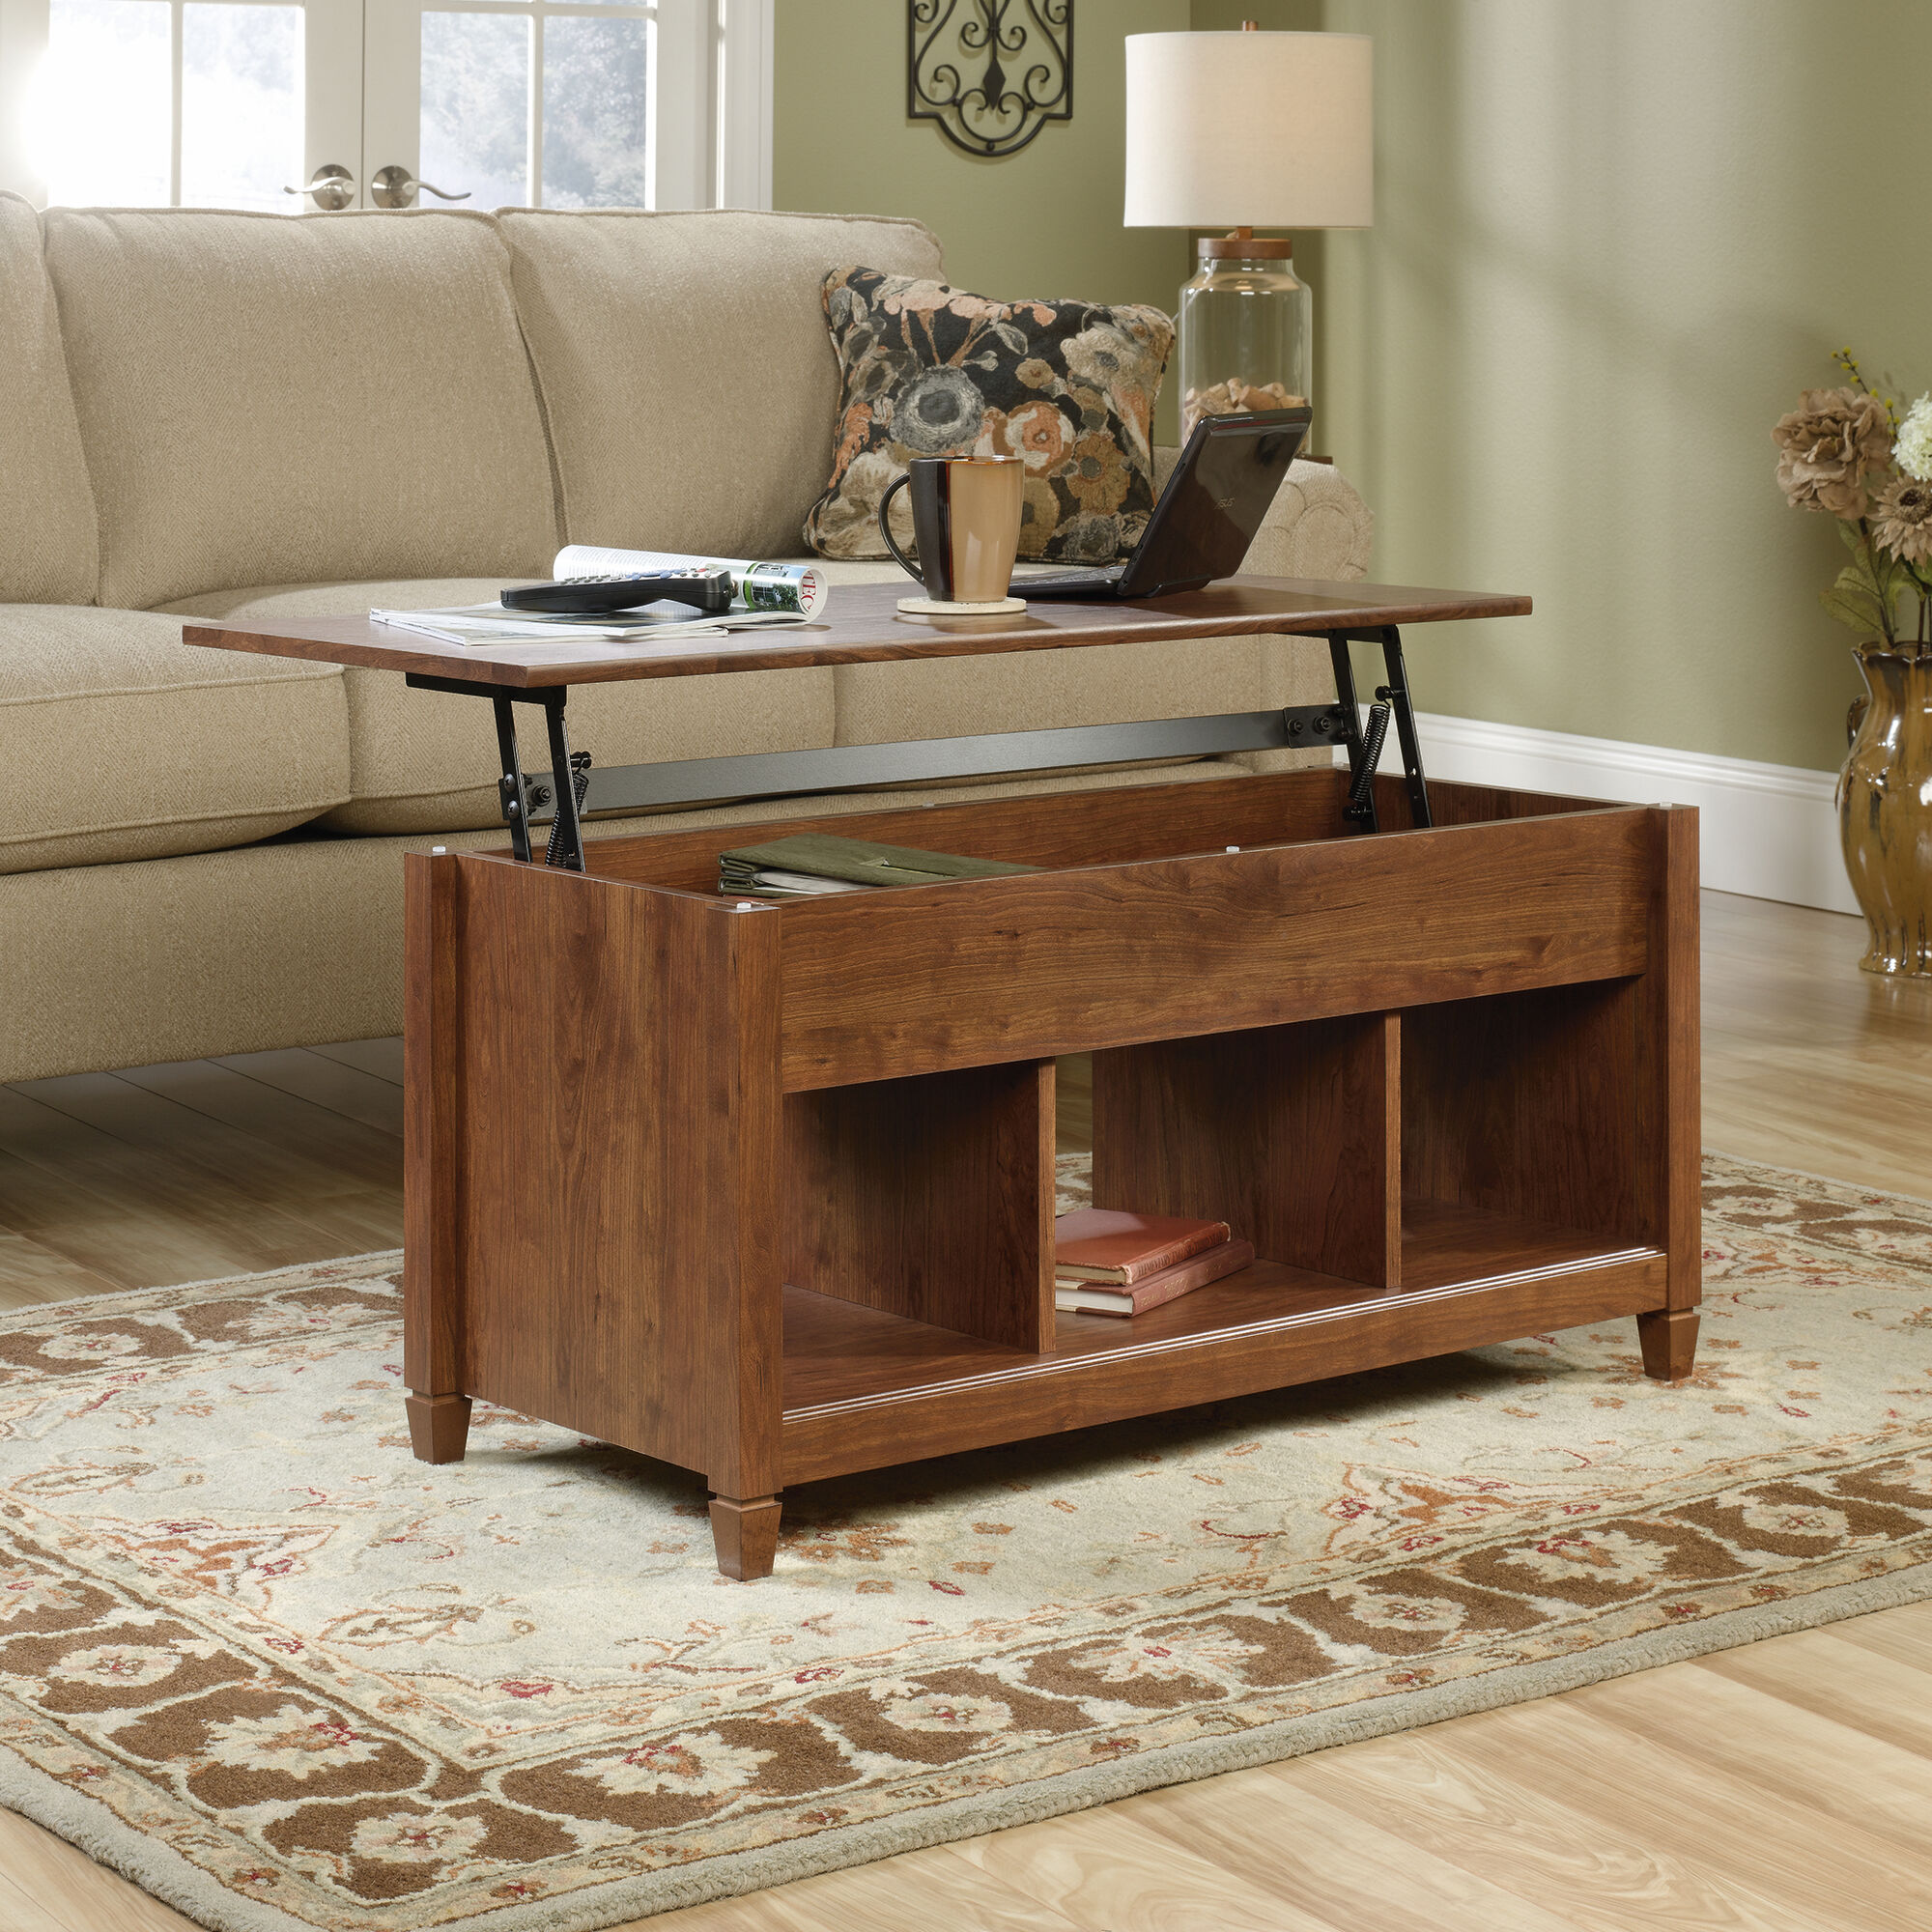 Rectangular Lift Top Contemporary Coffee Table In Auburn